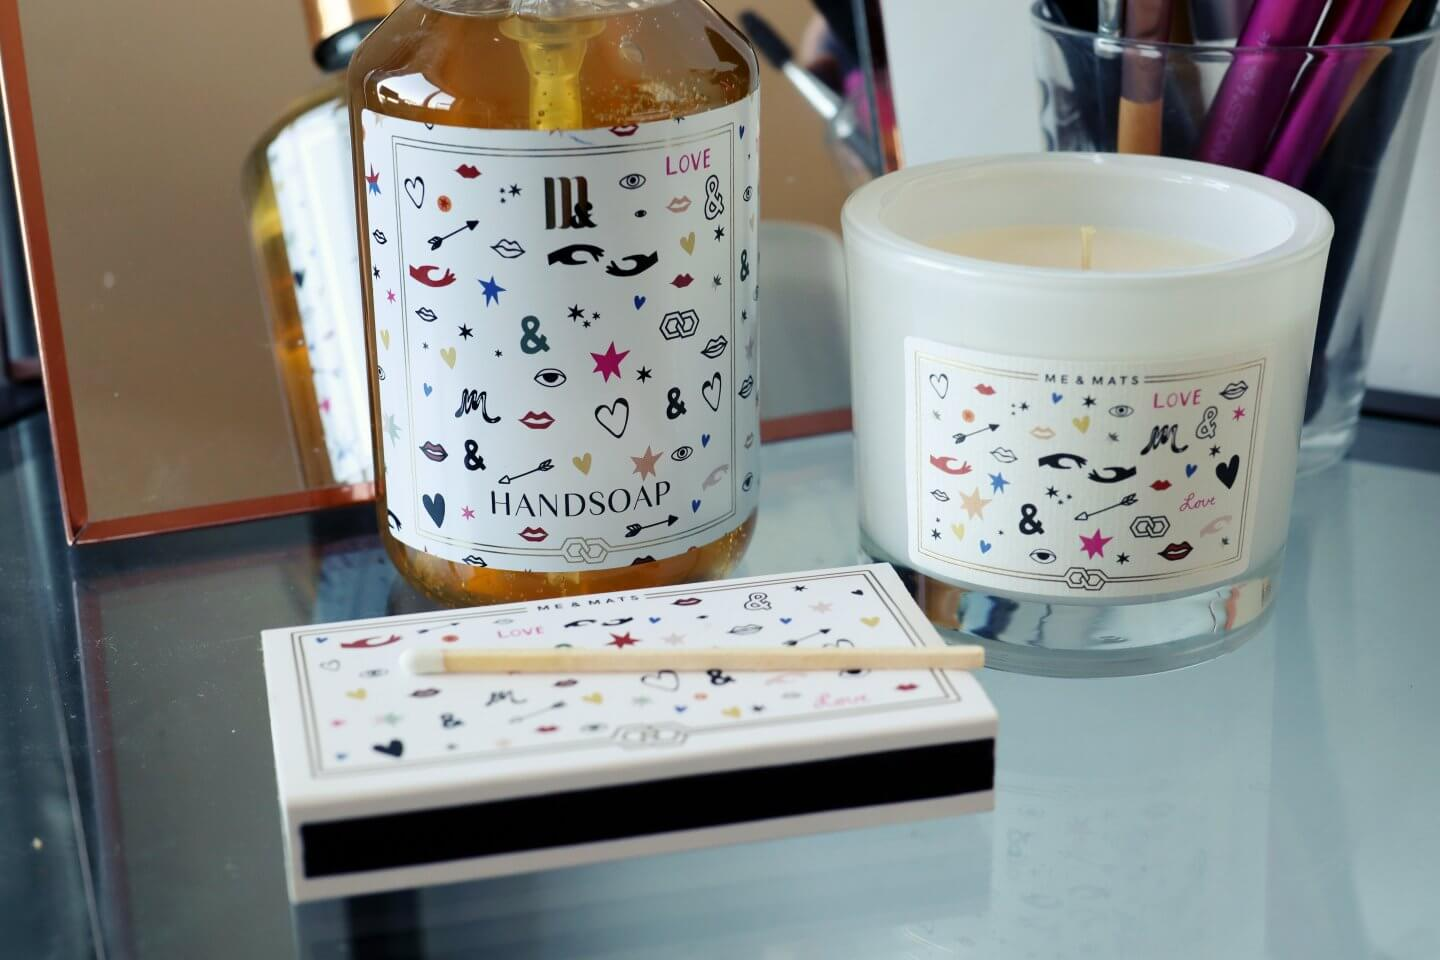 Me & Matts Vegan gifts: handsoap, scented candle and matches